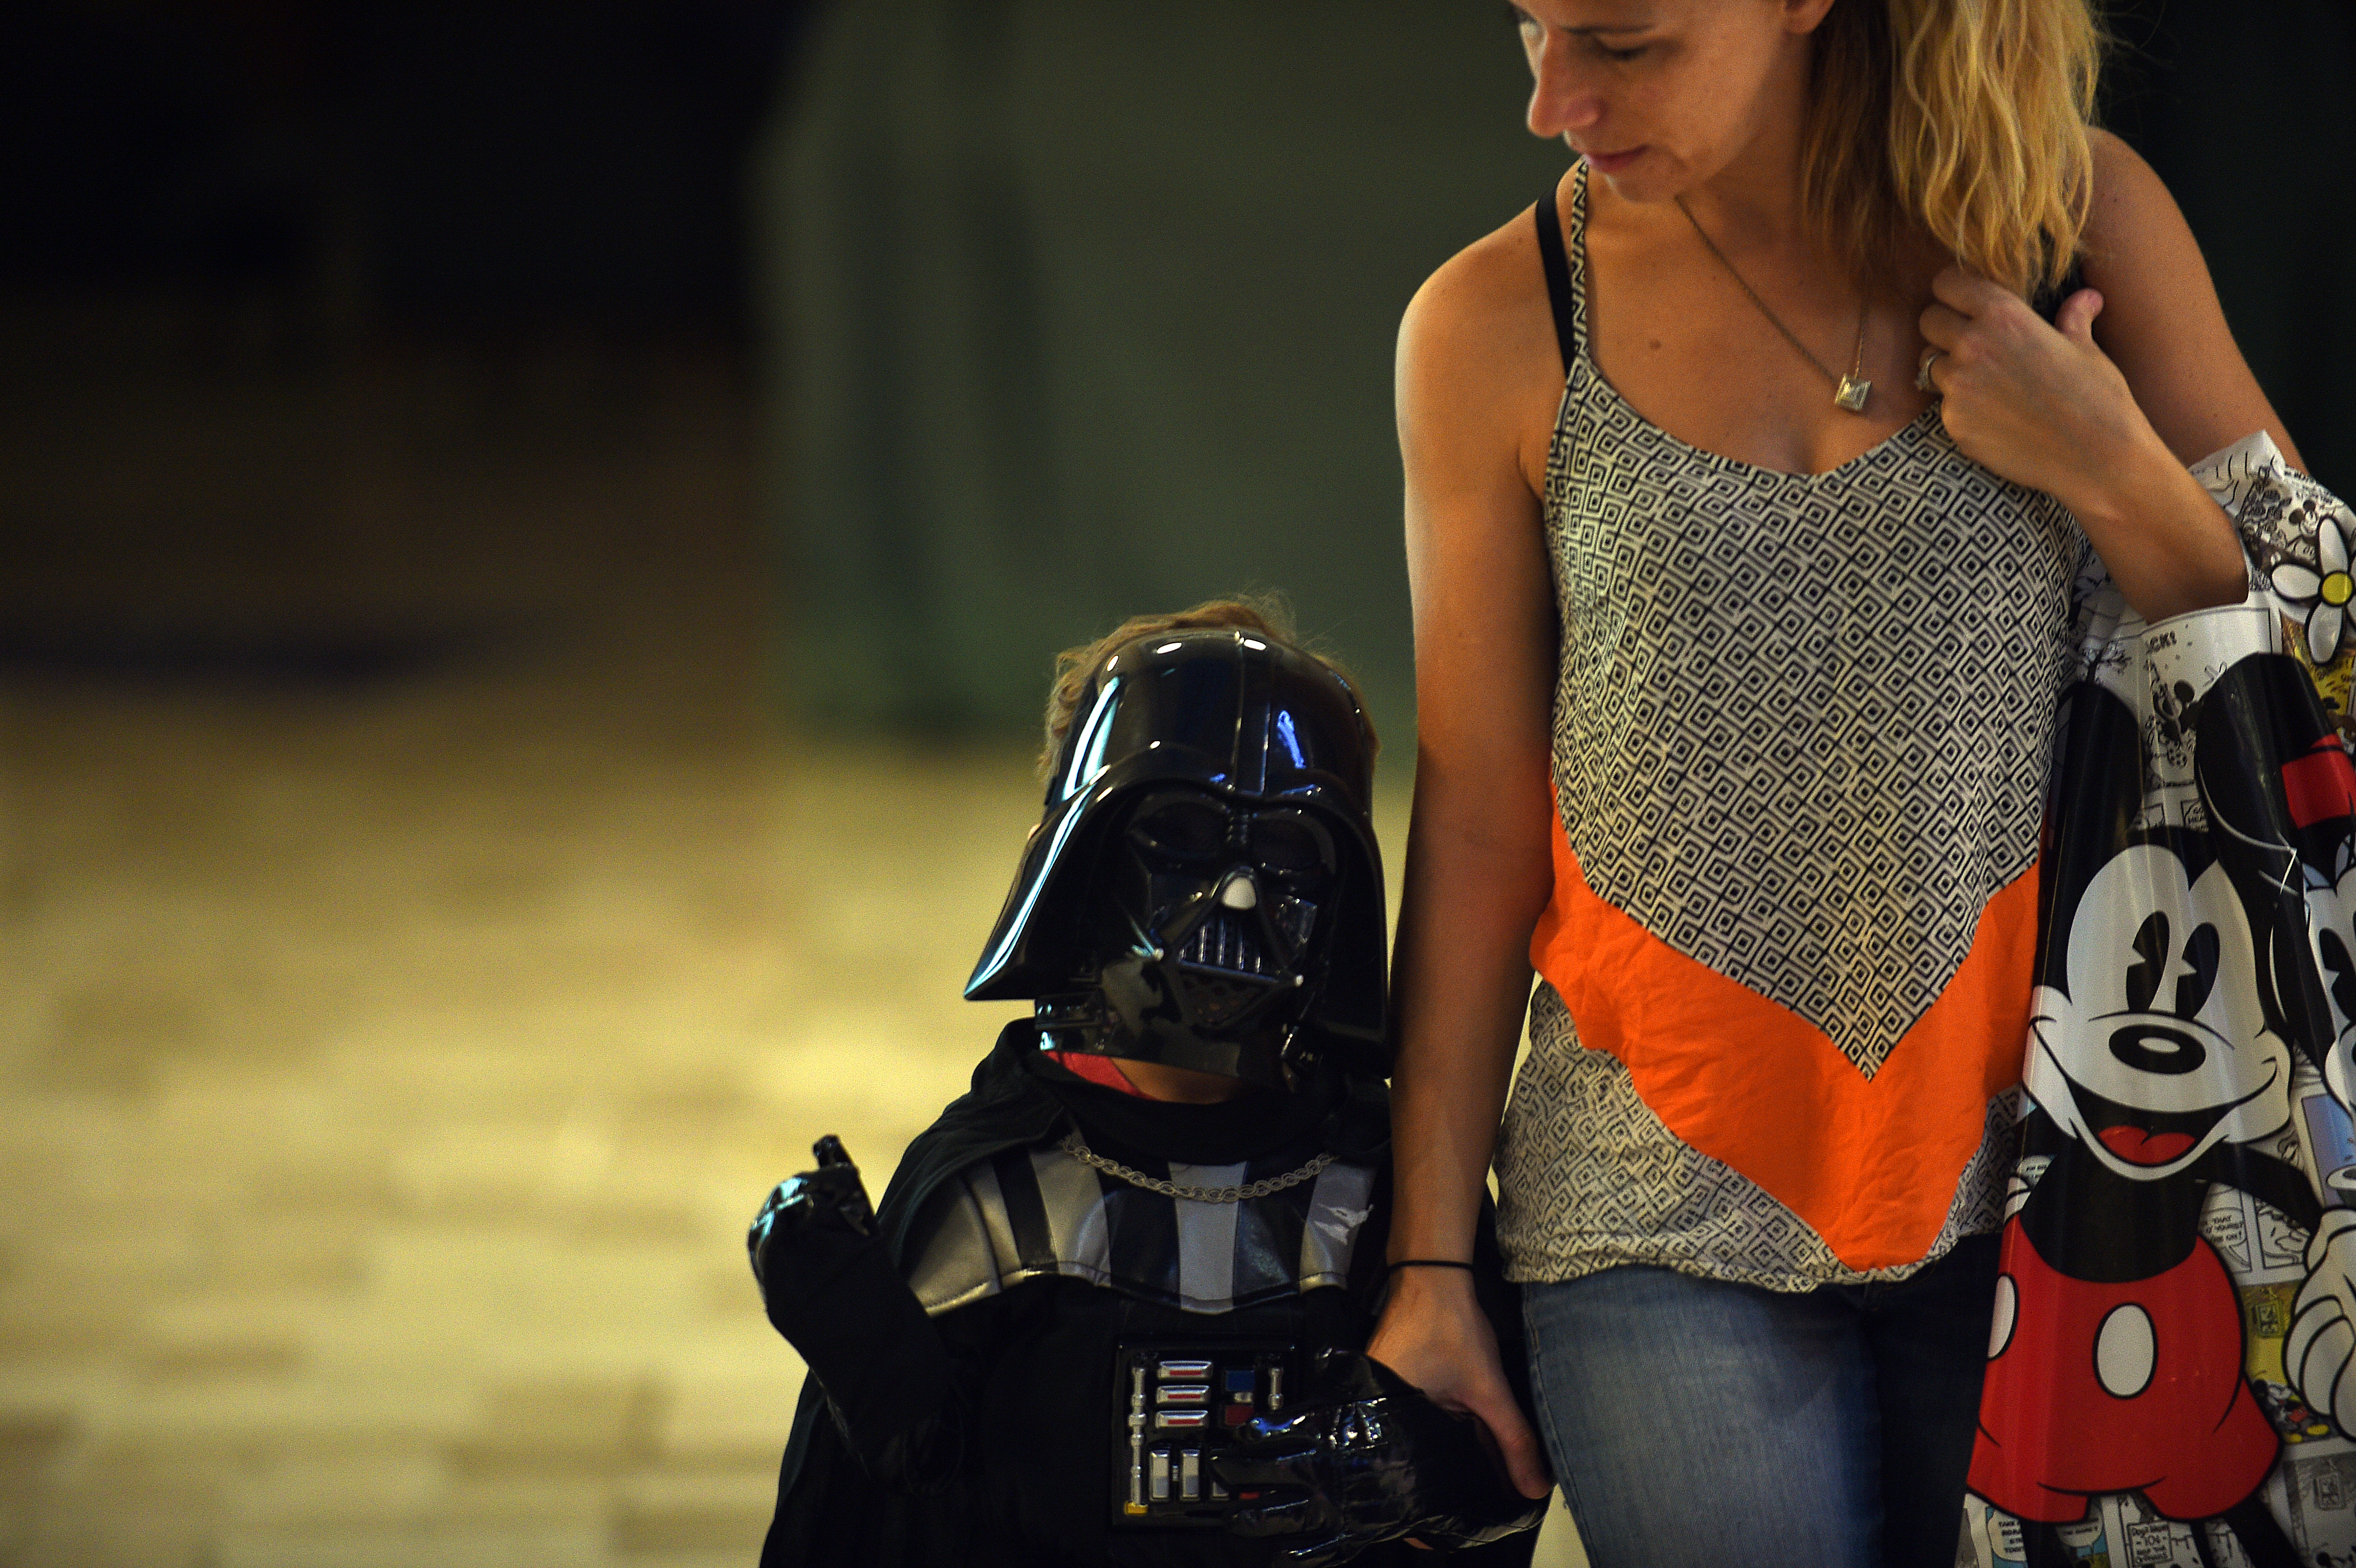 Star Wars enthusiast Jason Hume, 3, accompanied by his mother Holli Hume, leaves in full Star Wars outfit the Disney store at Tysons Corner Center Mall in McLean, Va., on Sept. 4, 2015, where he participated in  Force Friday,  a kickoff celebration for all the new Star Wars toys.